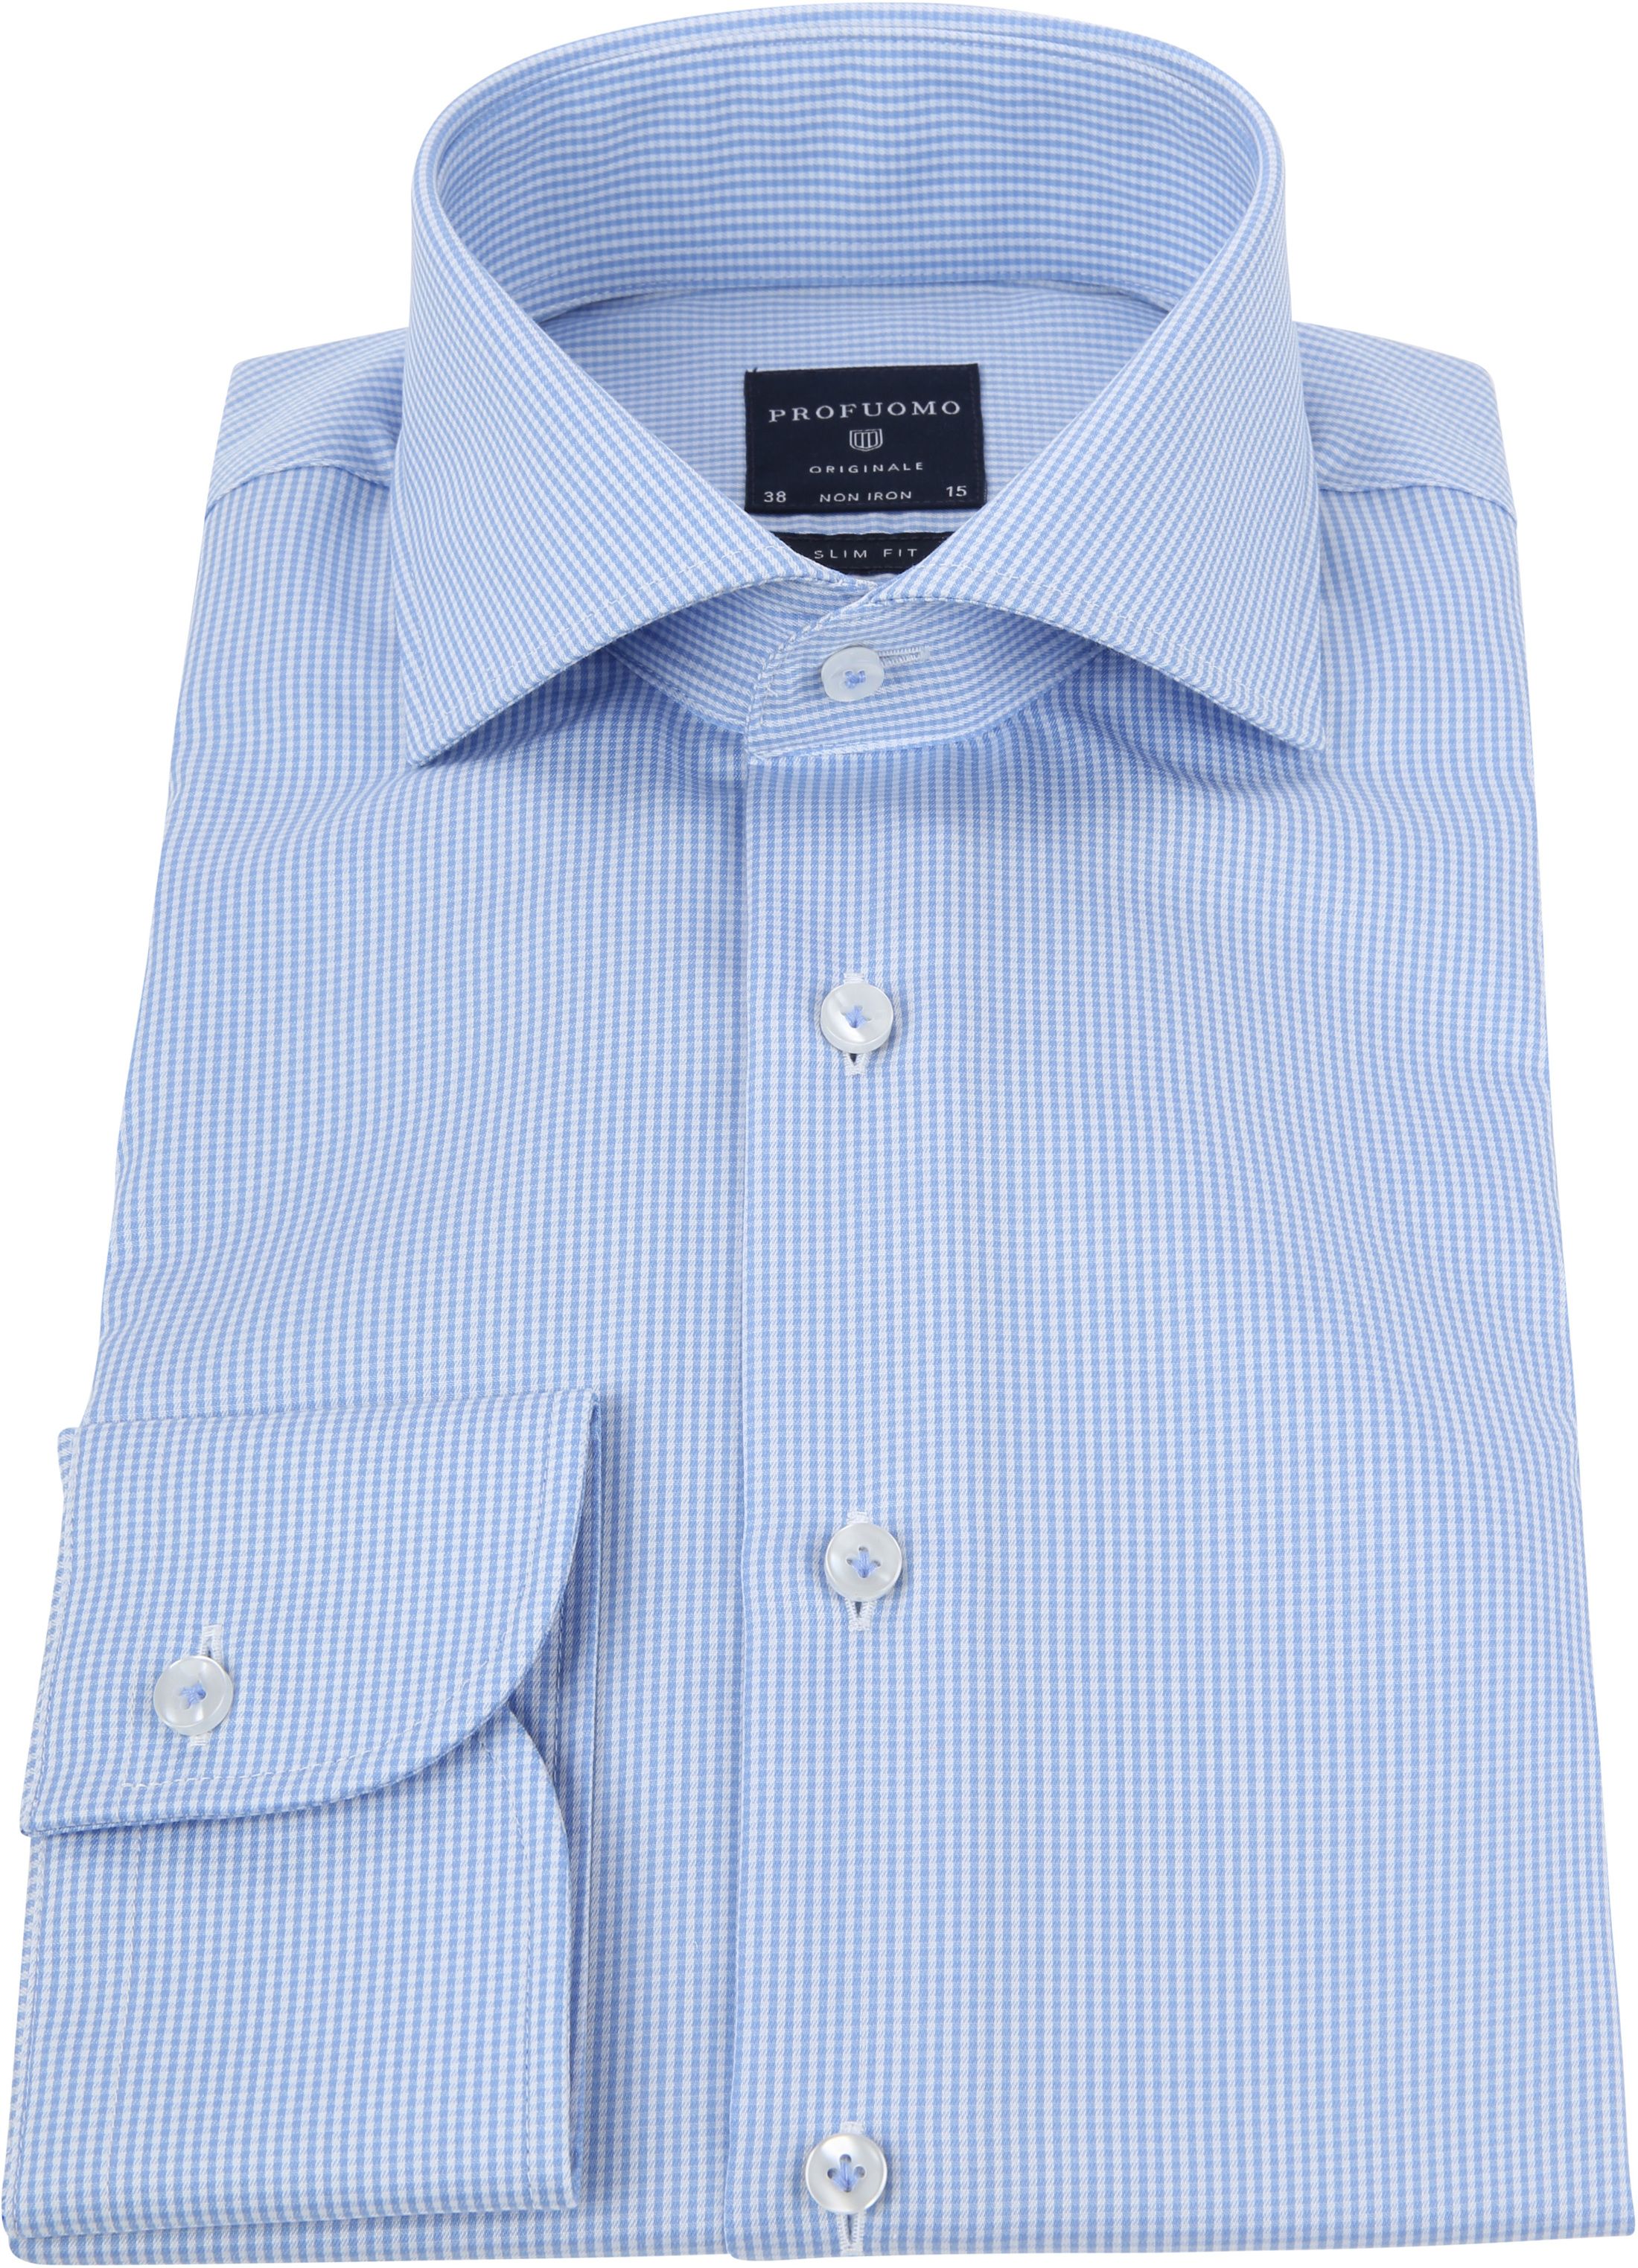 Profuomo Shirt Cutaway Blue Checks foto 2